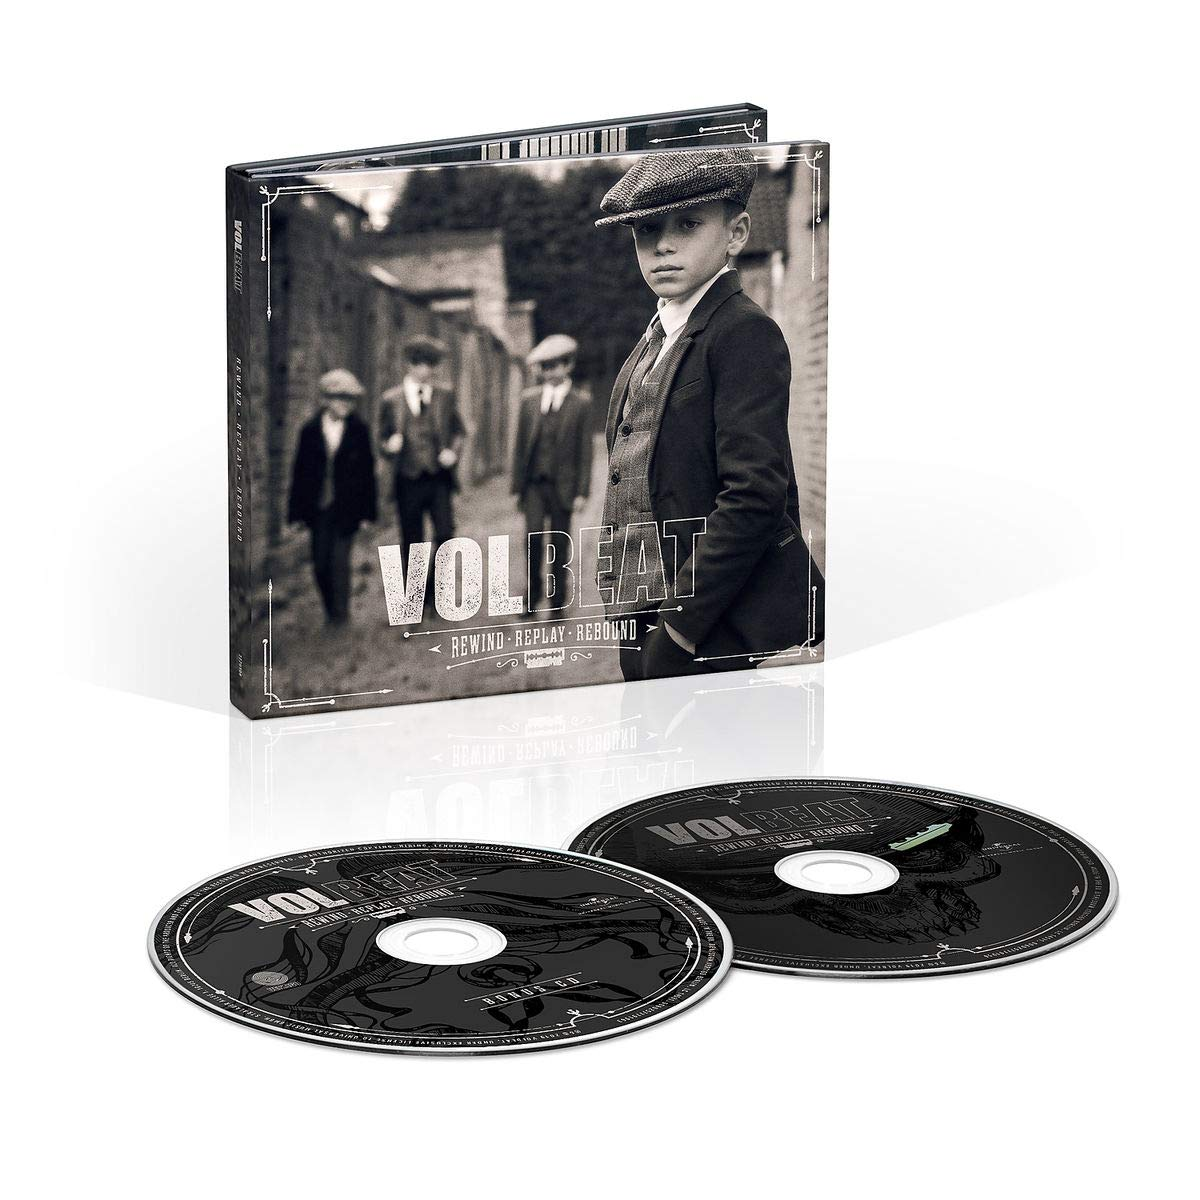 CD Shop - VOLBEAT REWIND, REPLAY, REBOUND/LTD/DLX